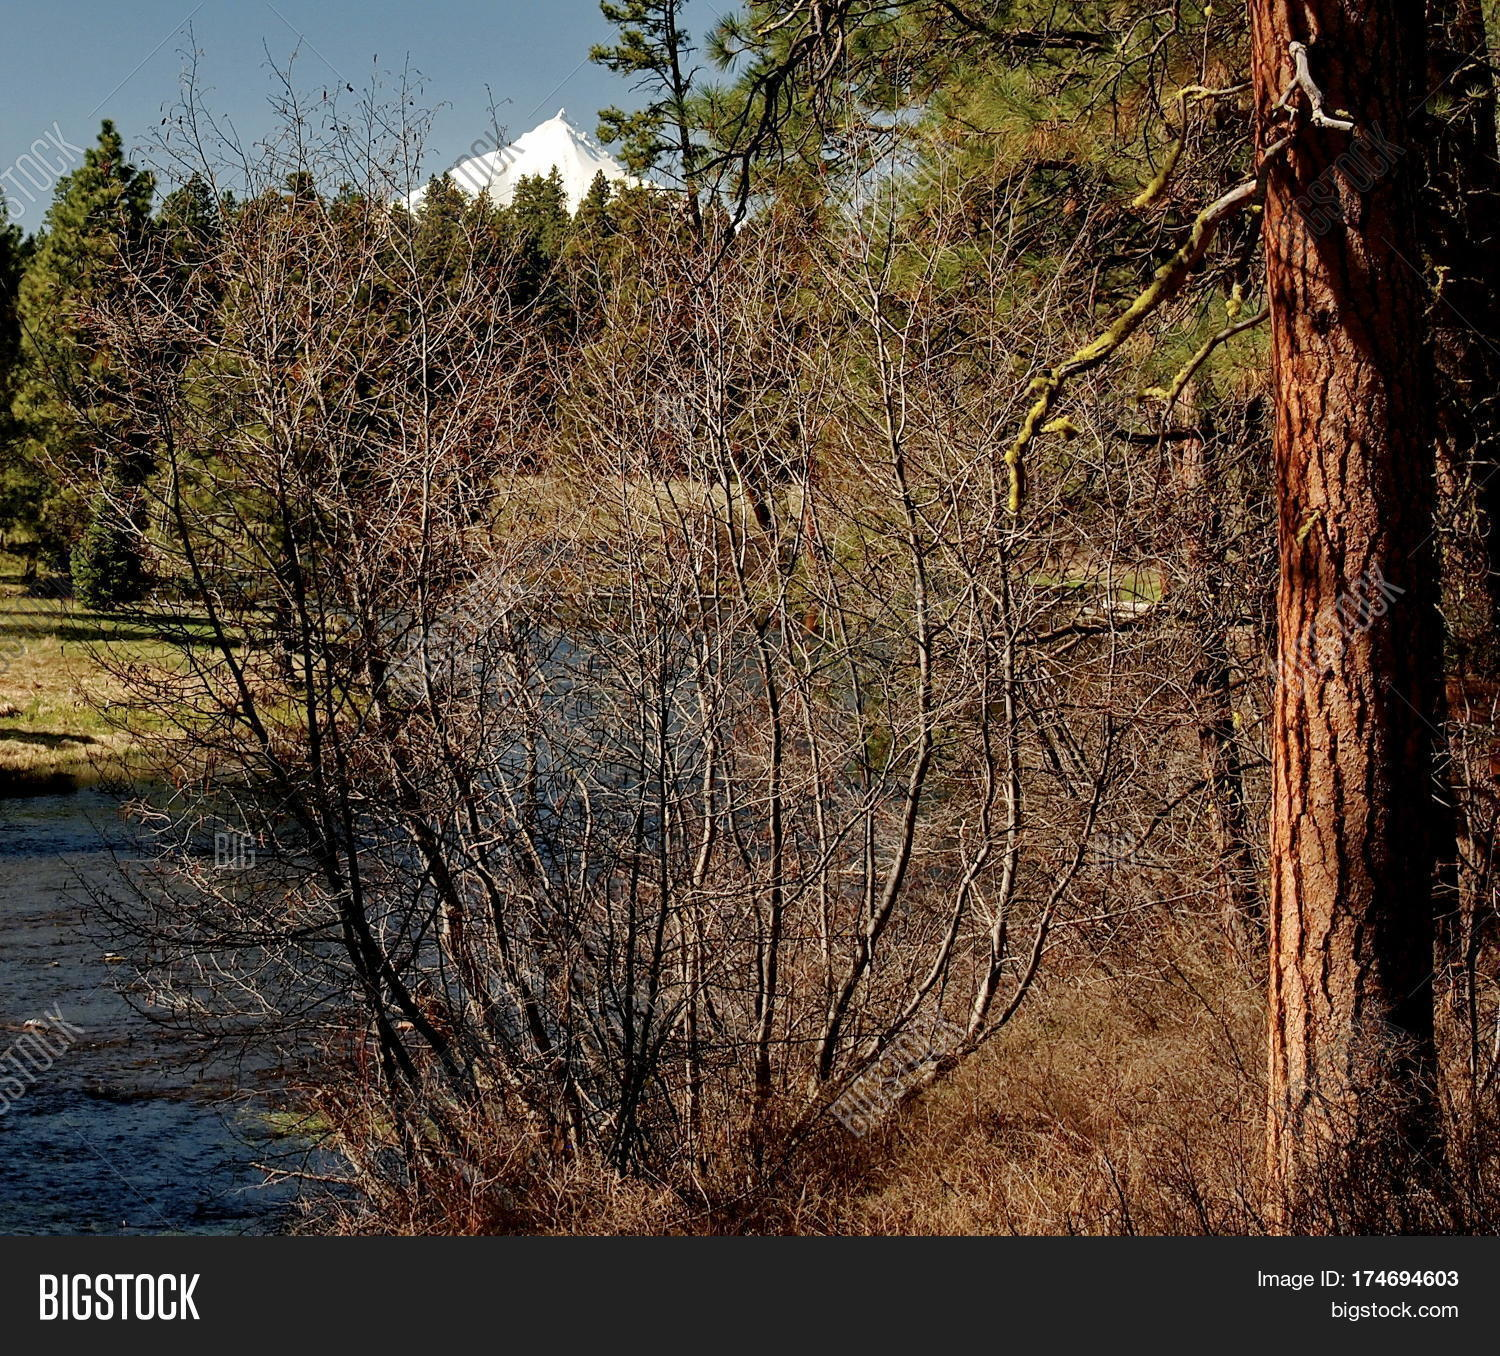 afternoon,america,april,authentic,beautiful,blue,branches,brown,bushes,cascade,color,county,environment,evergreen,forest,geology,grasses,green,grey,jefferson,landscape,mountains,nature,northwest,outdoor,pacific,photograph,pretty,scenic,sky,snow,sunny,terrain,usa,water,white,wild,woods